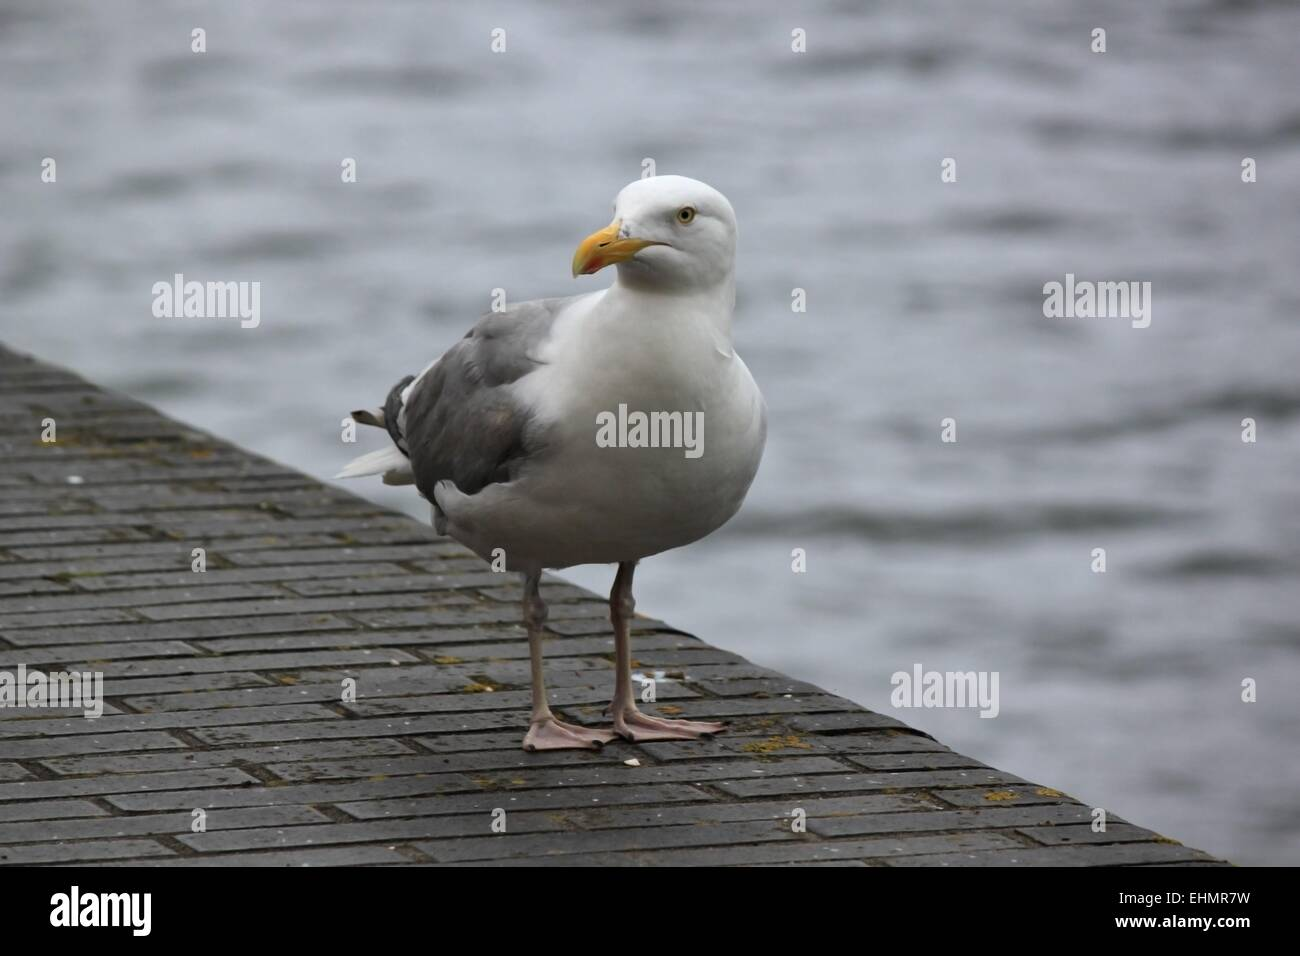 Seagull by the waters edge - Stock Image